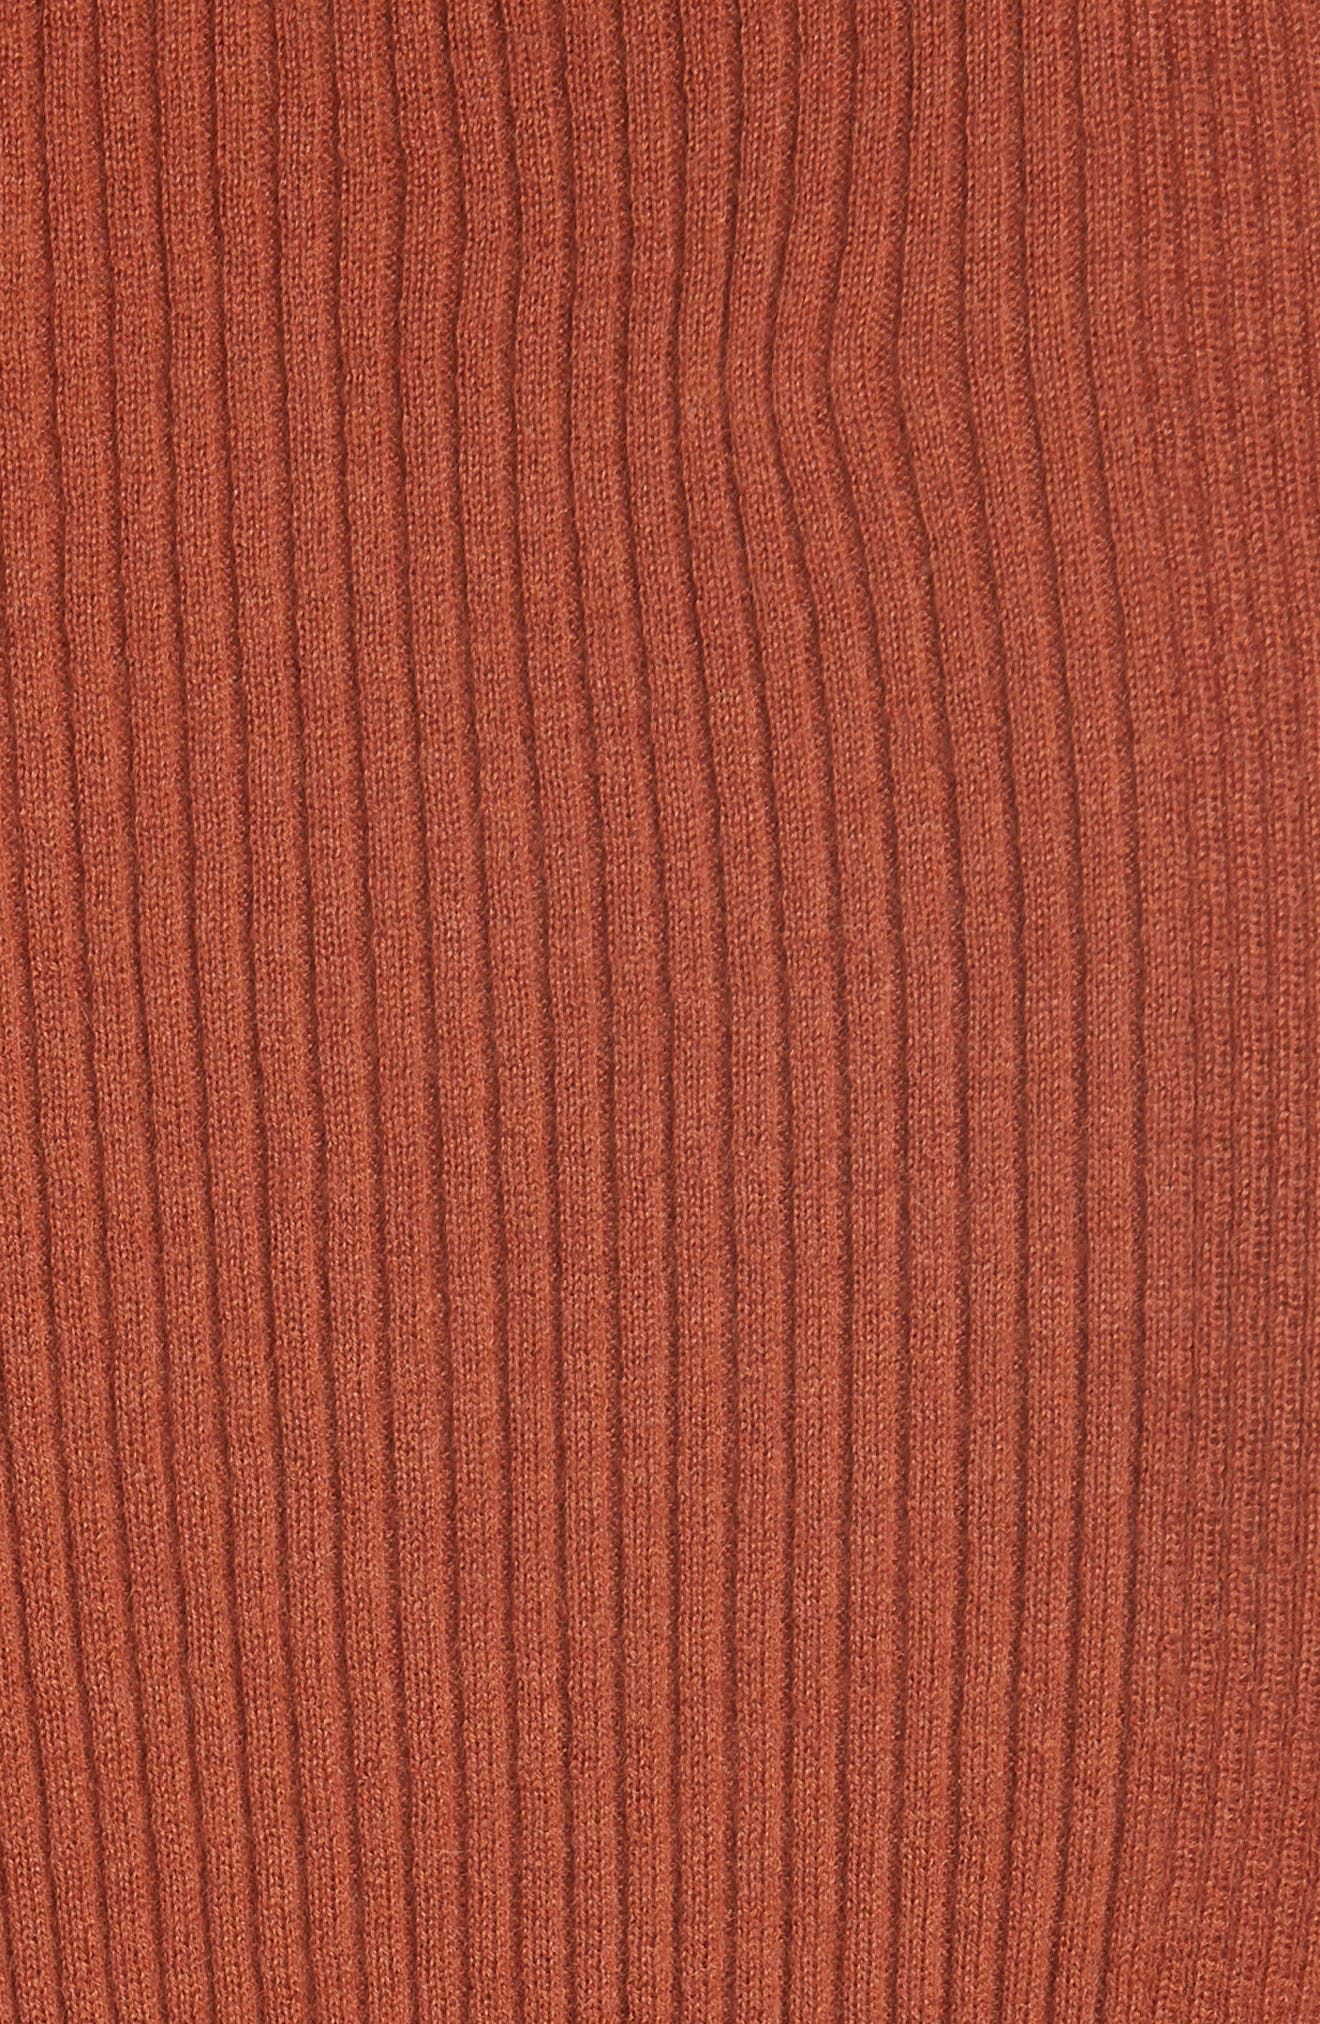 Taylor Ribbed Cashmere Sweater,                             Alternate thumbnail 5, color,                             DESERT SPICE